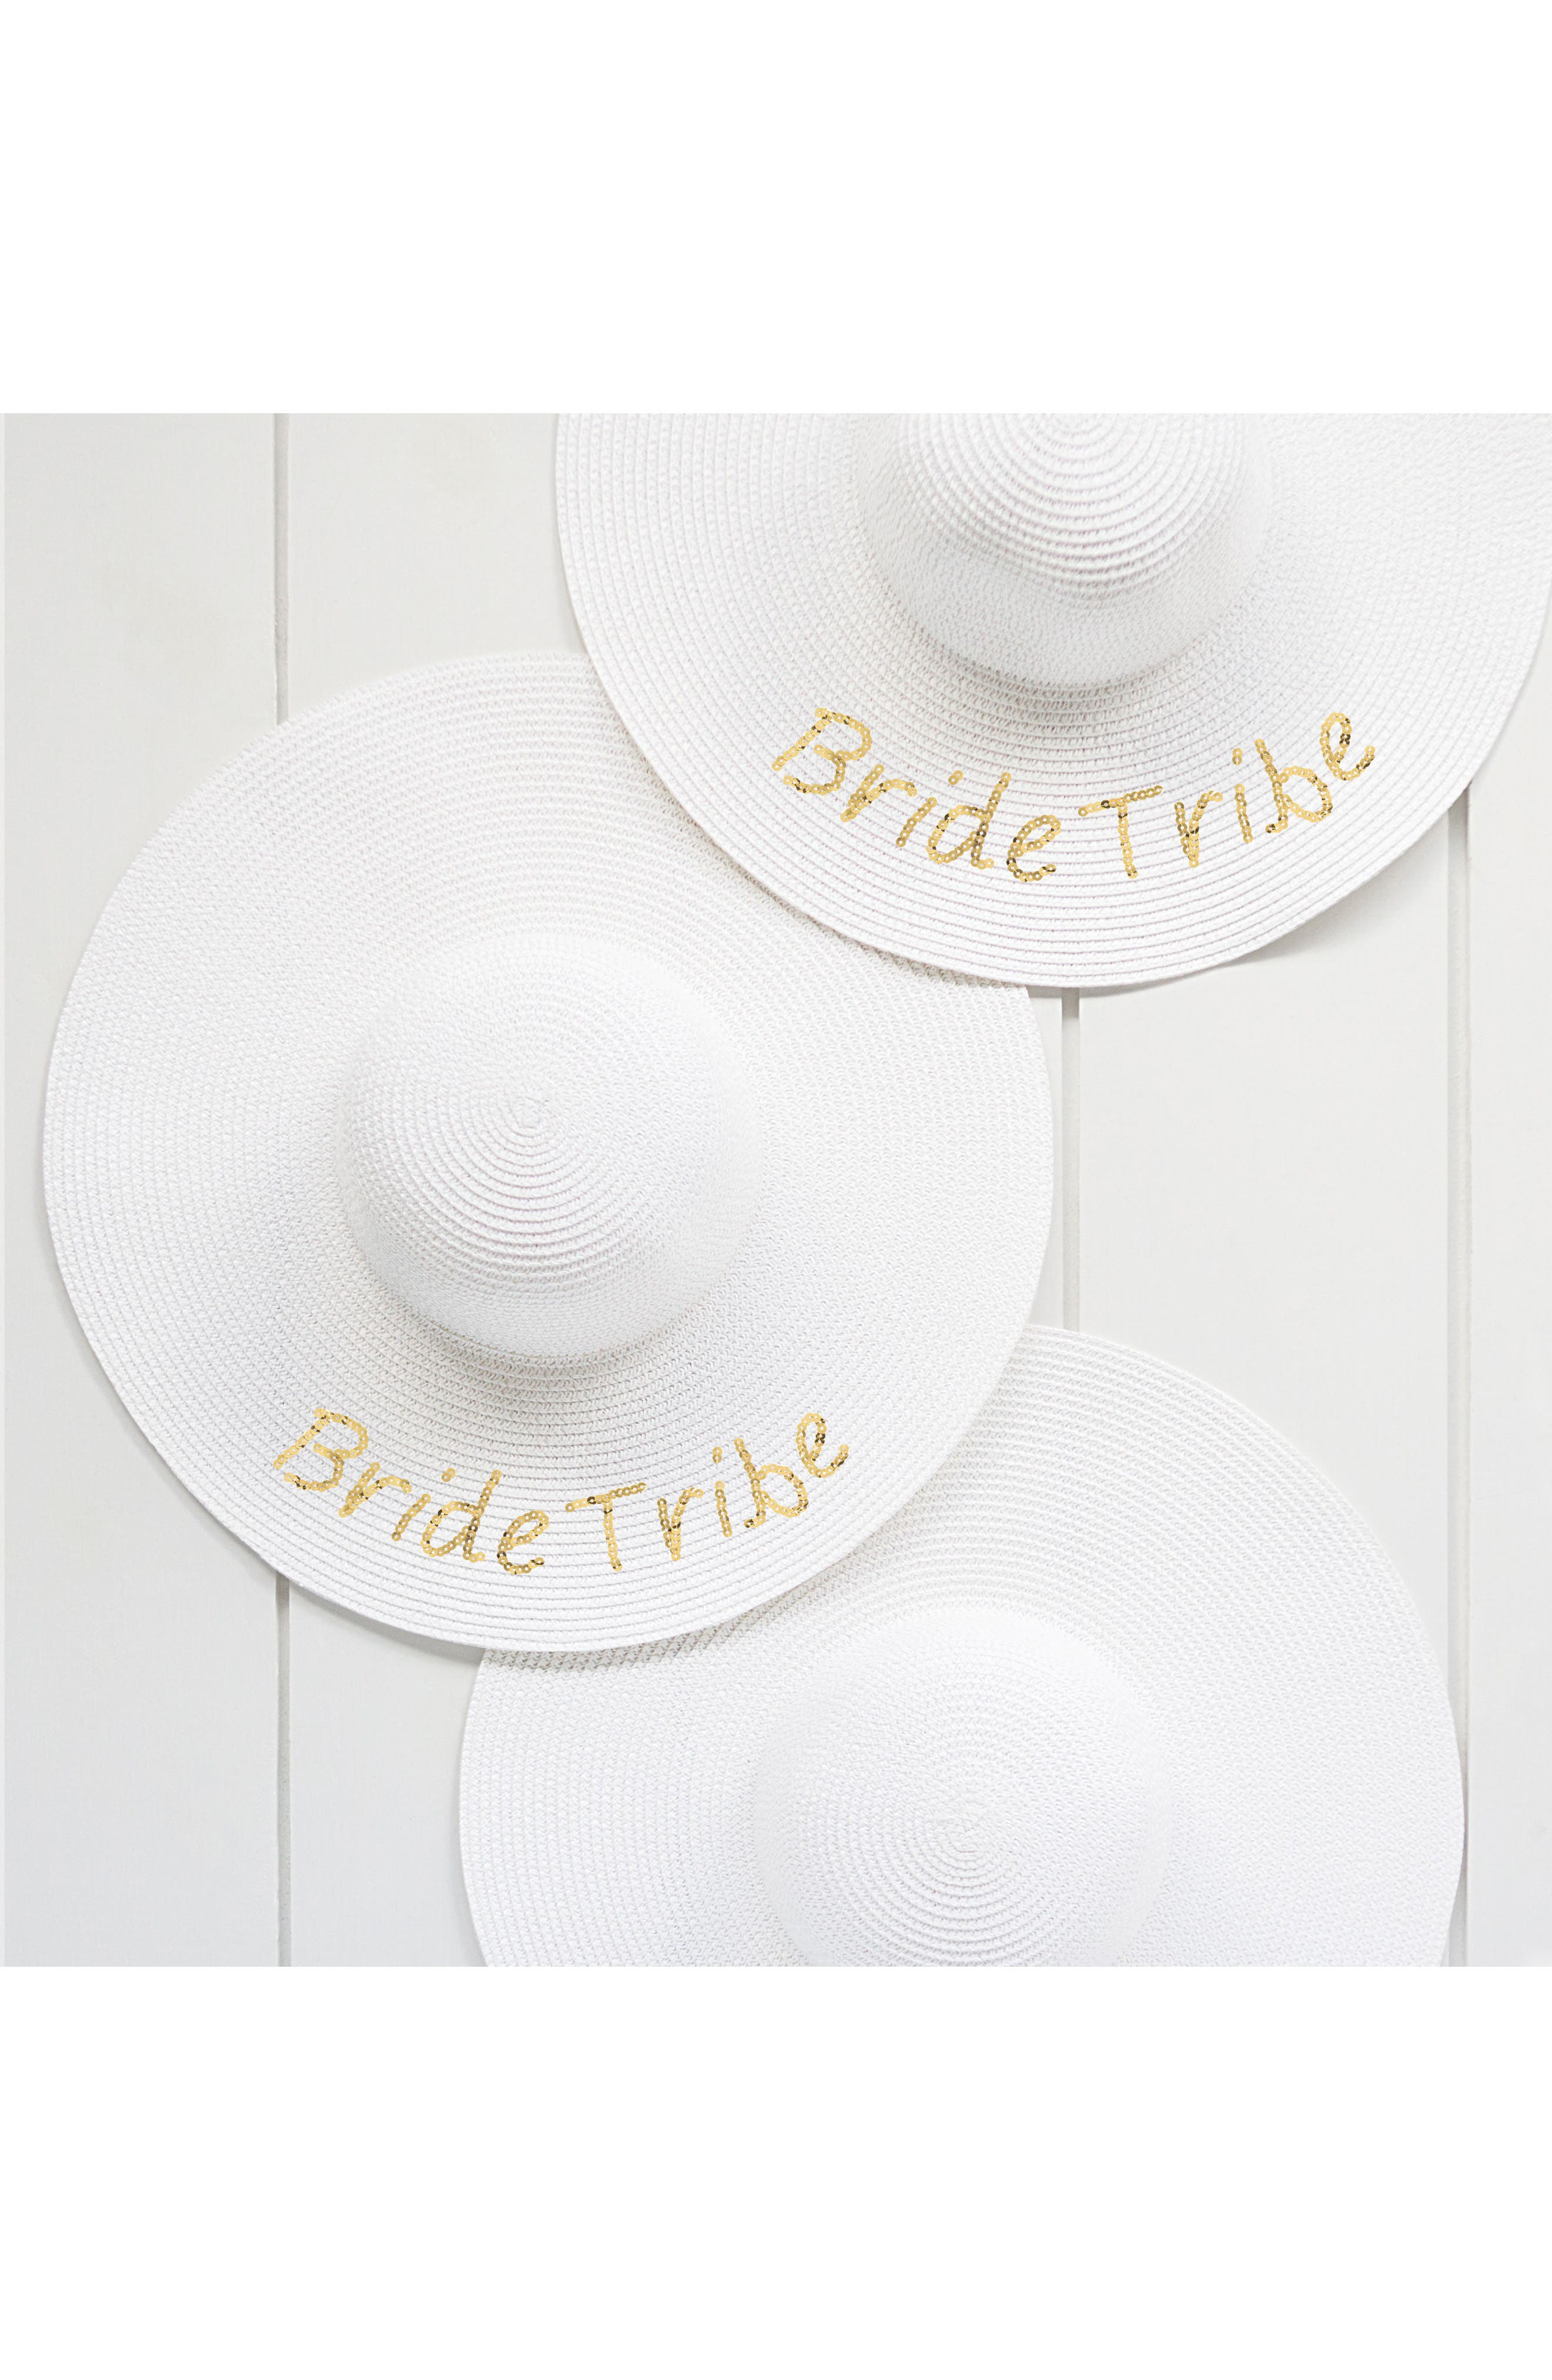 Sequin Bride Tribe Straw Hat,                             Alternate thumbnail 3, color,